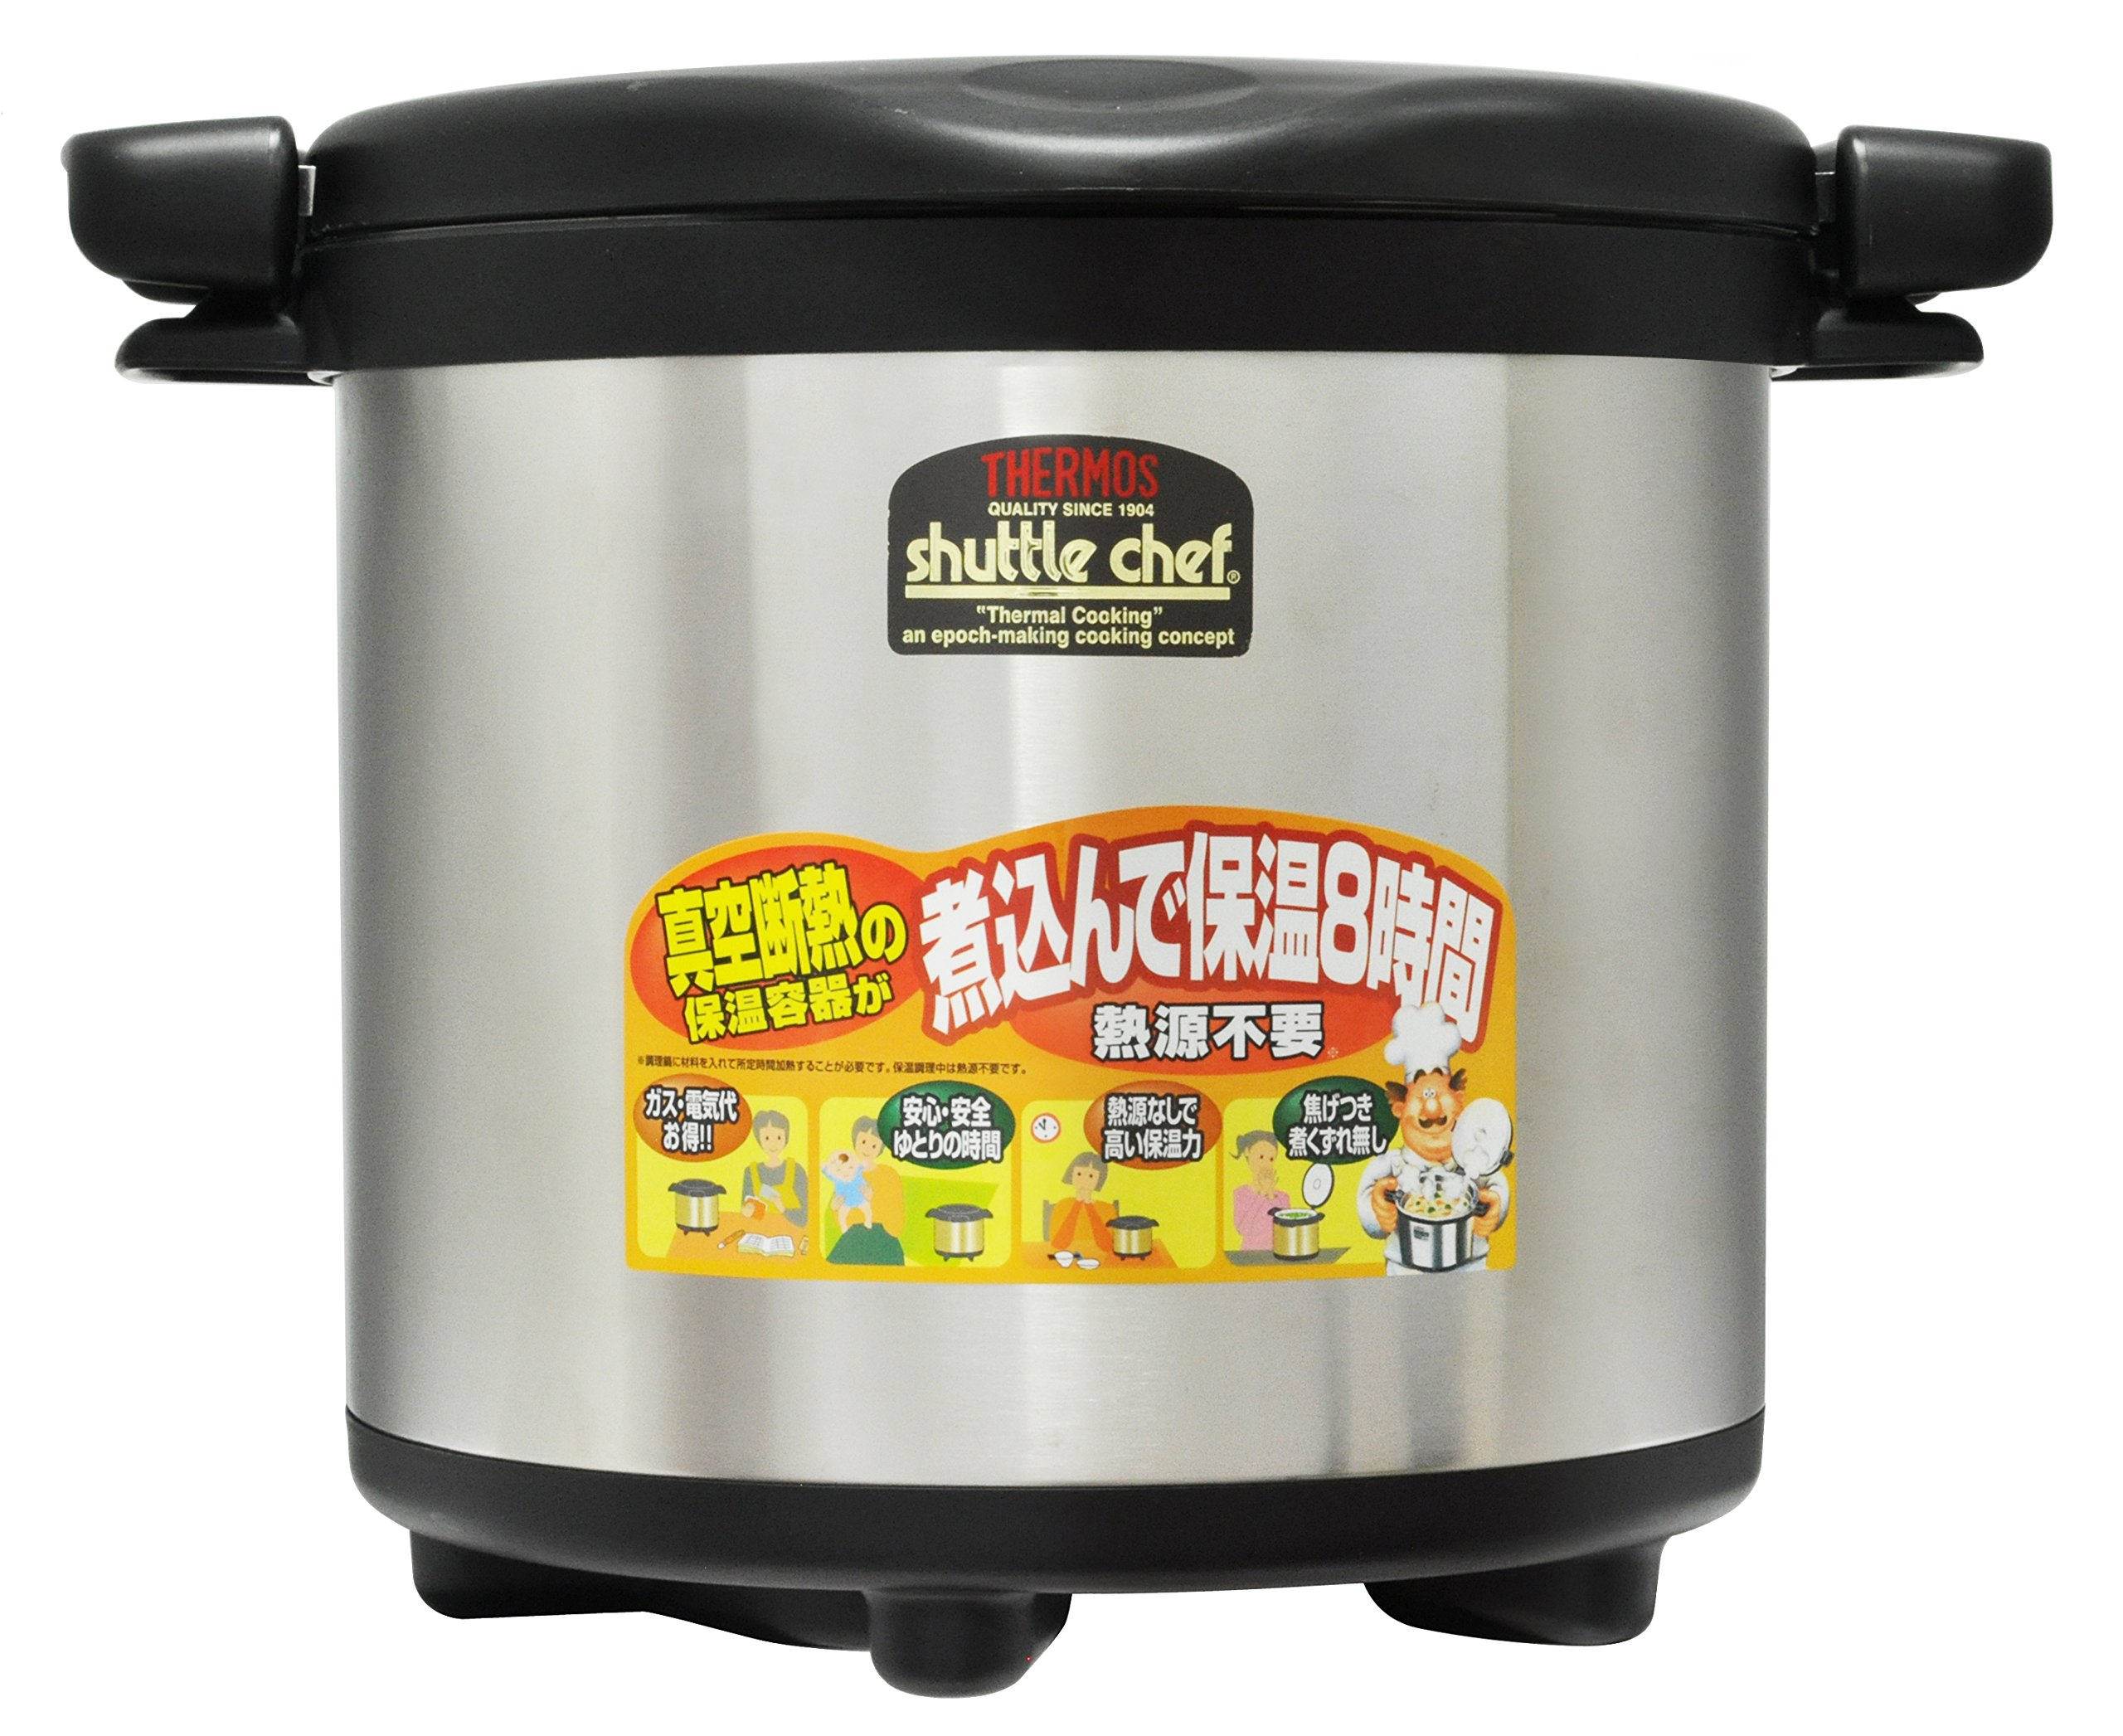 THERMOS Shuttle Chef KPS-8000 8L Thermal Cooker Vacuum Pot Slow Cooker